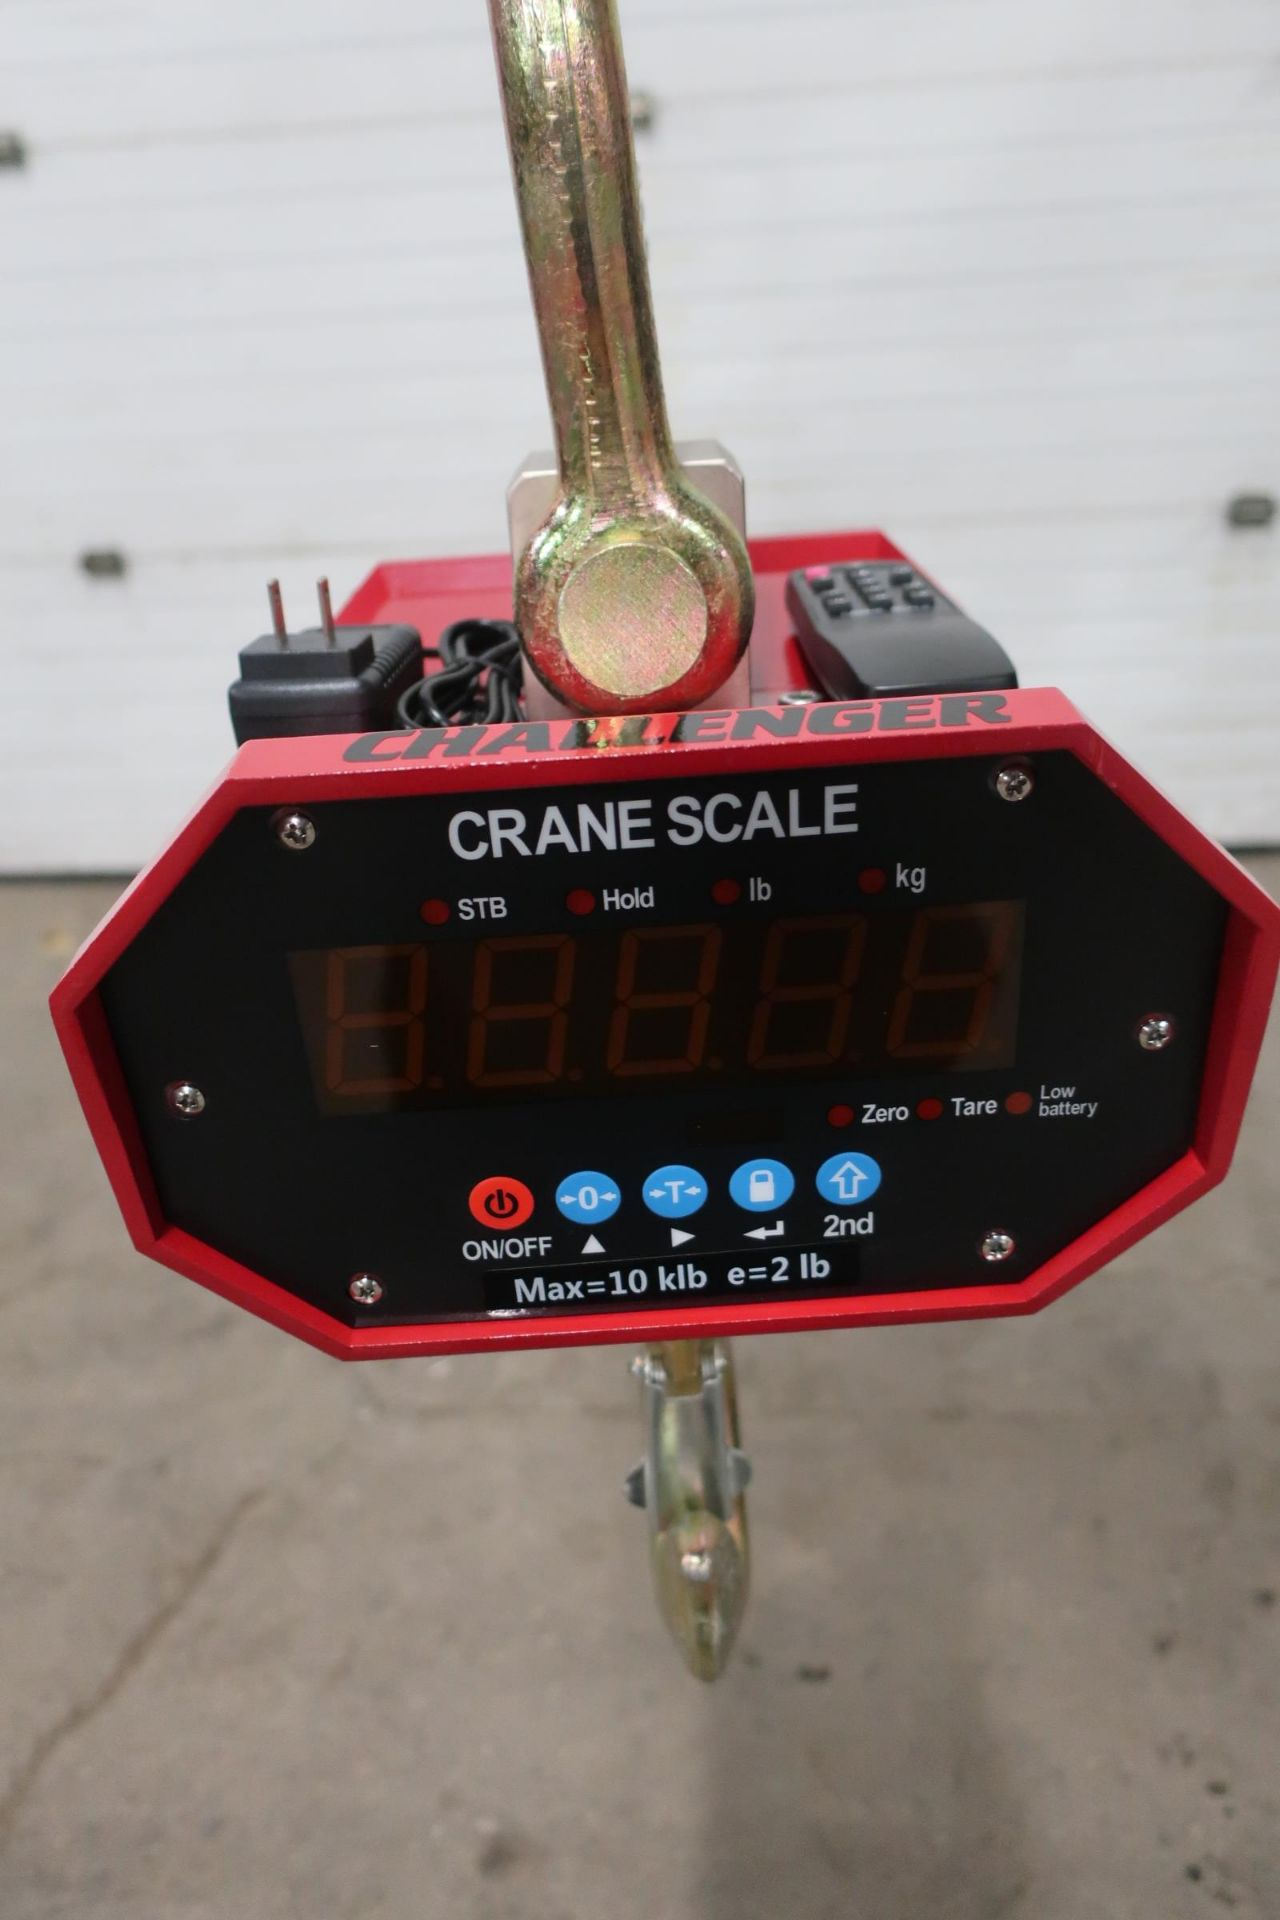 Hanging MINT Digital Crane Scale 20,000lbs 10 ton Capacity - complete with remote control and - Image 2 of 3